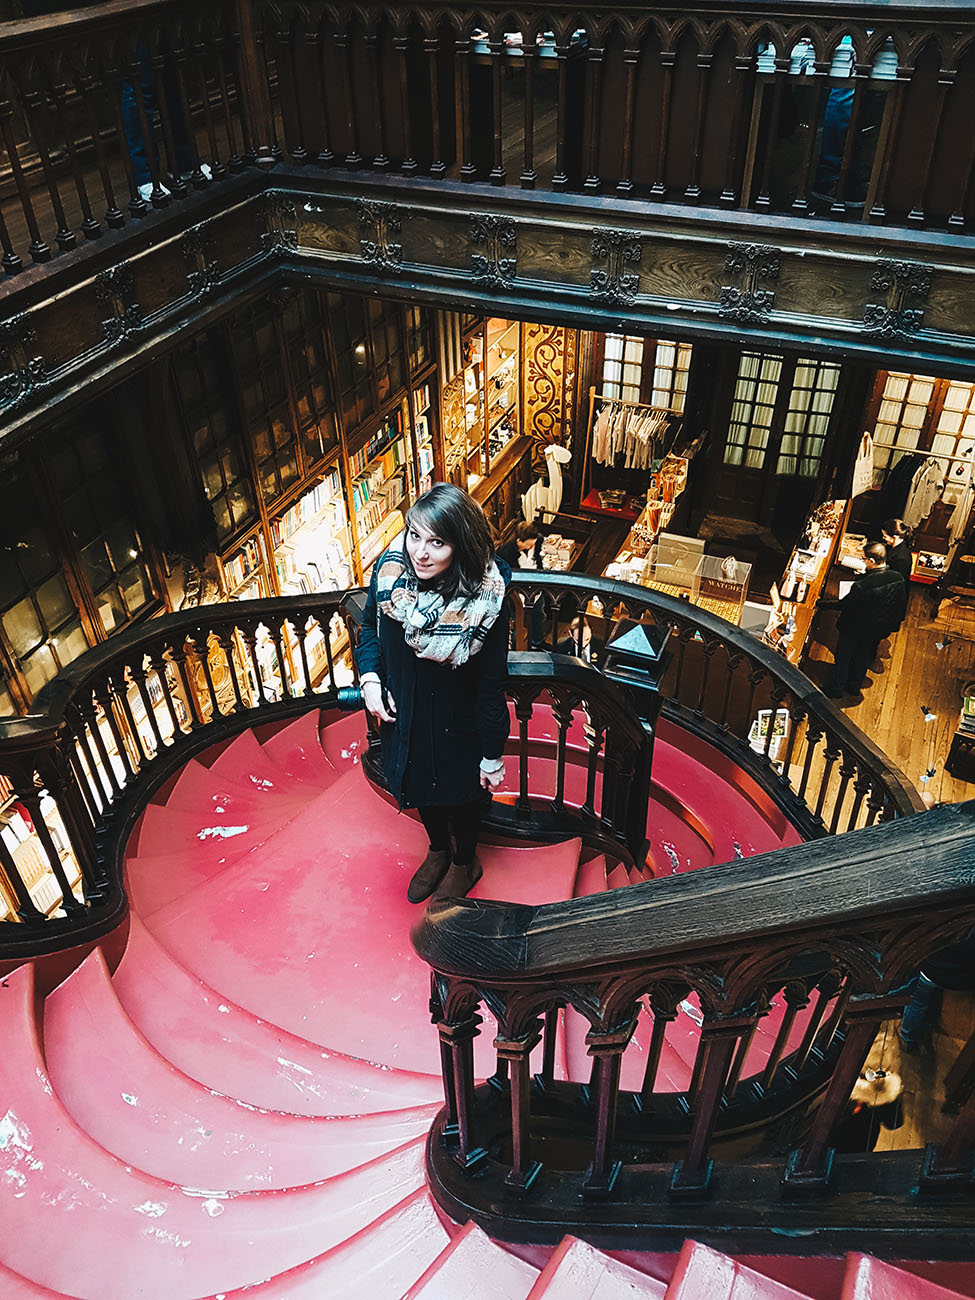 choses à faire à porto, librairie lello